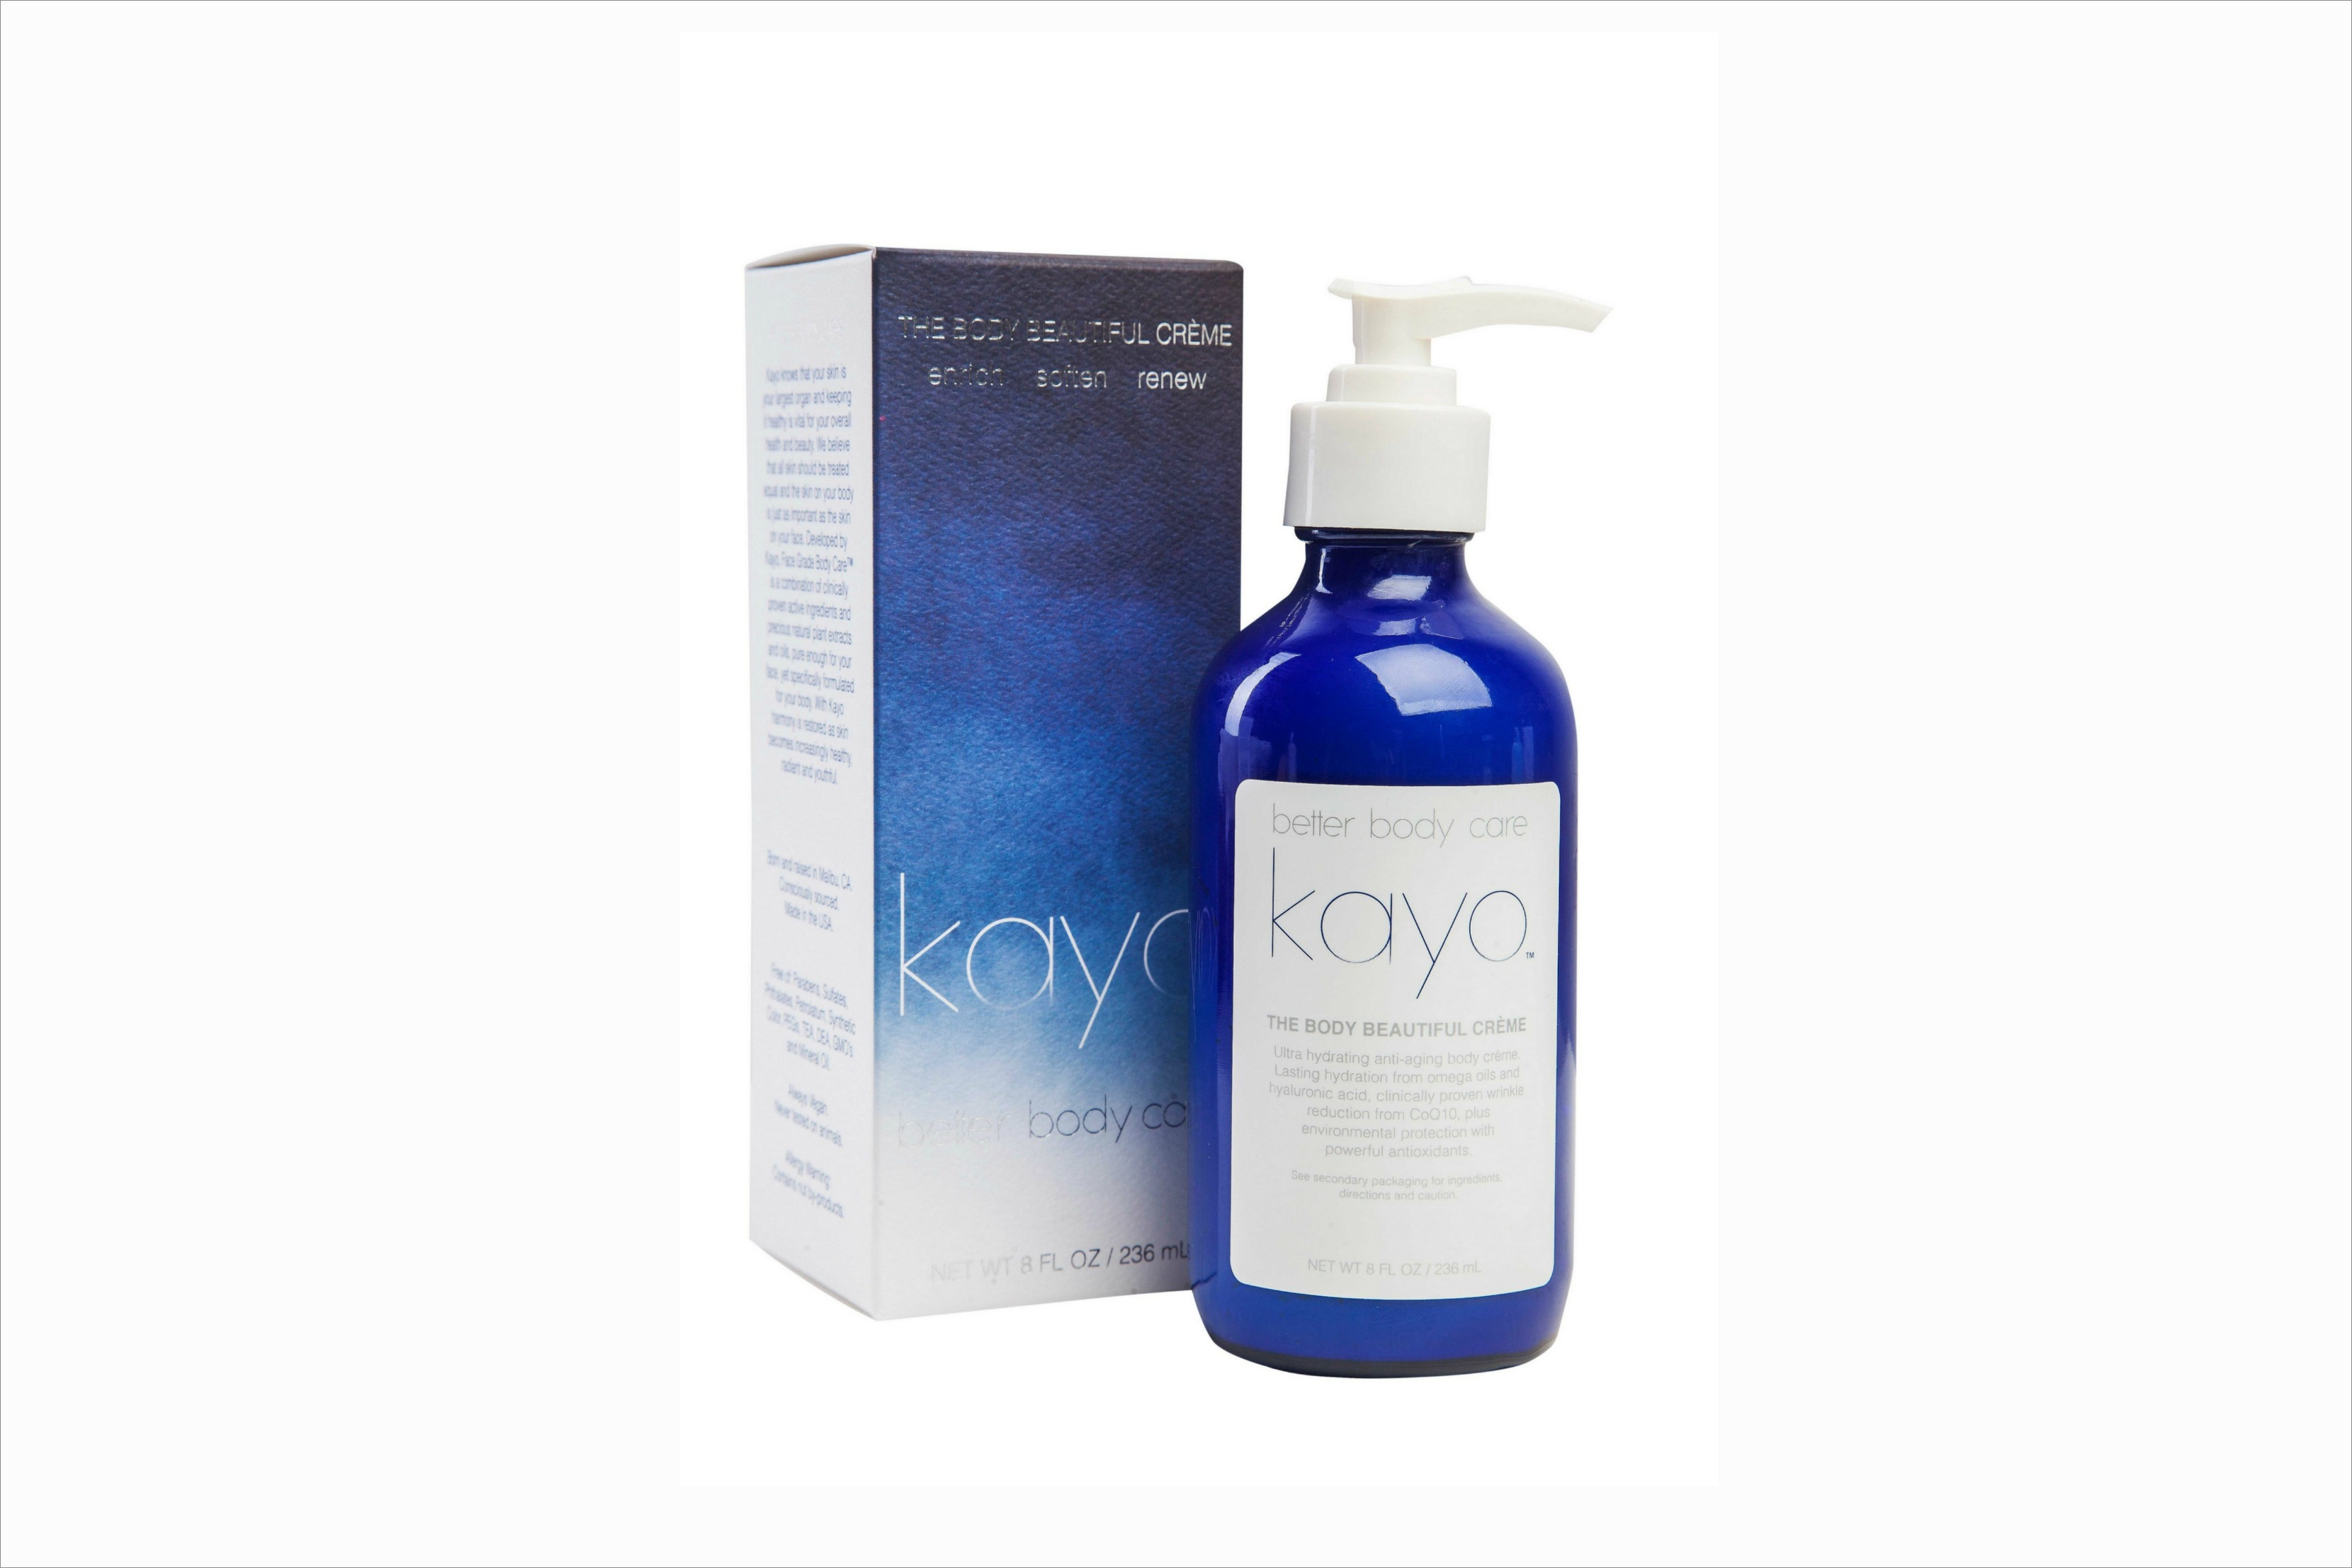 Kayo The Beautiful Body Creme beauty product